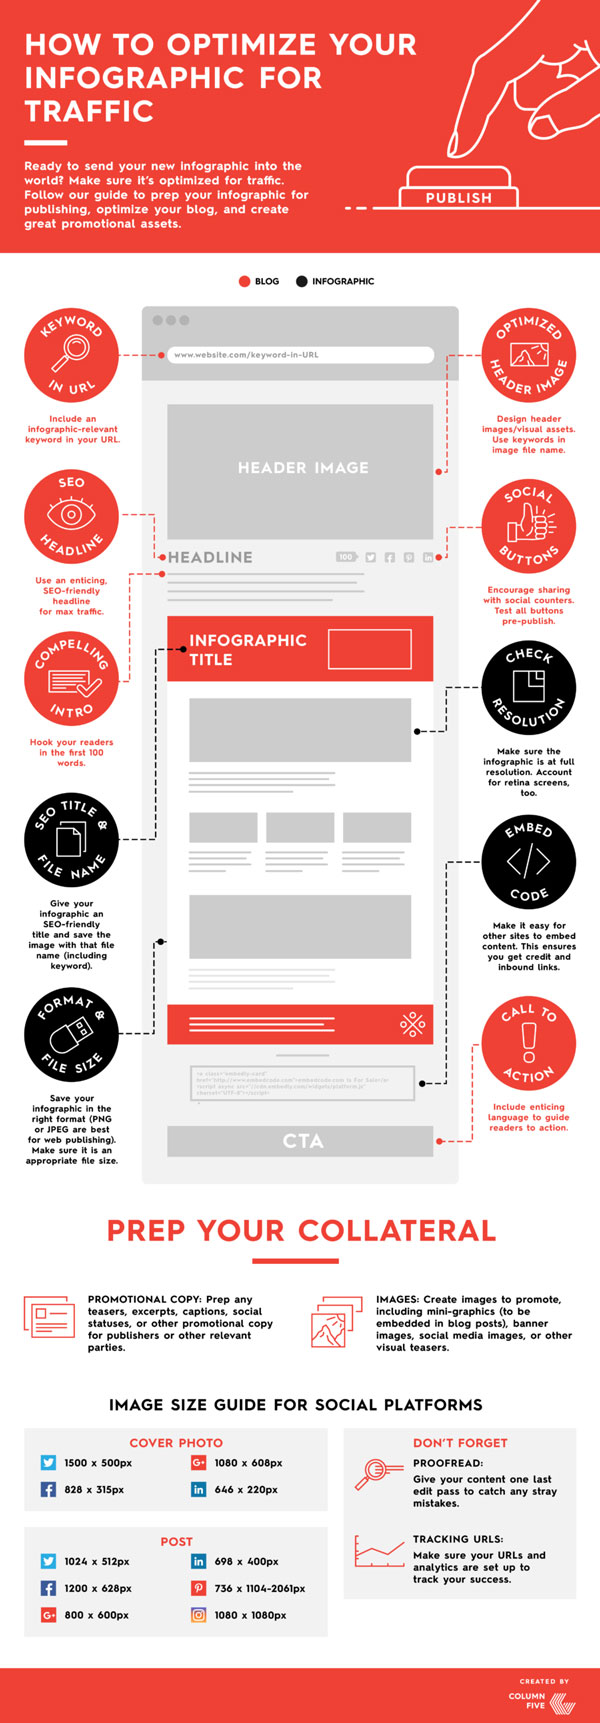 optimize-your-infographic